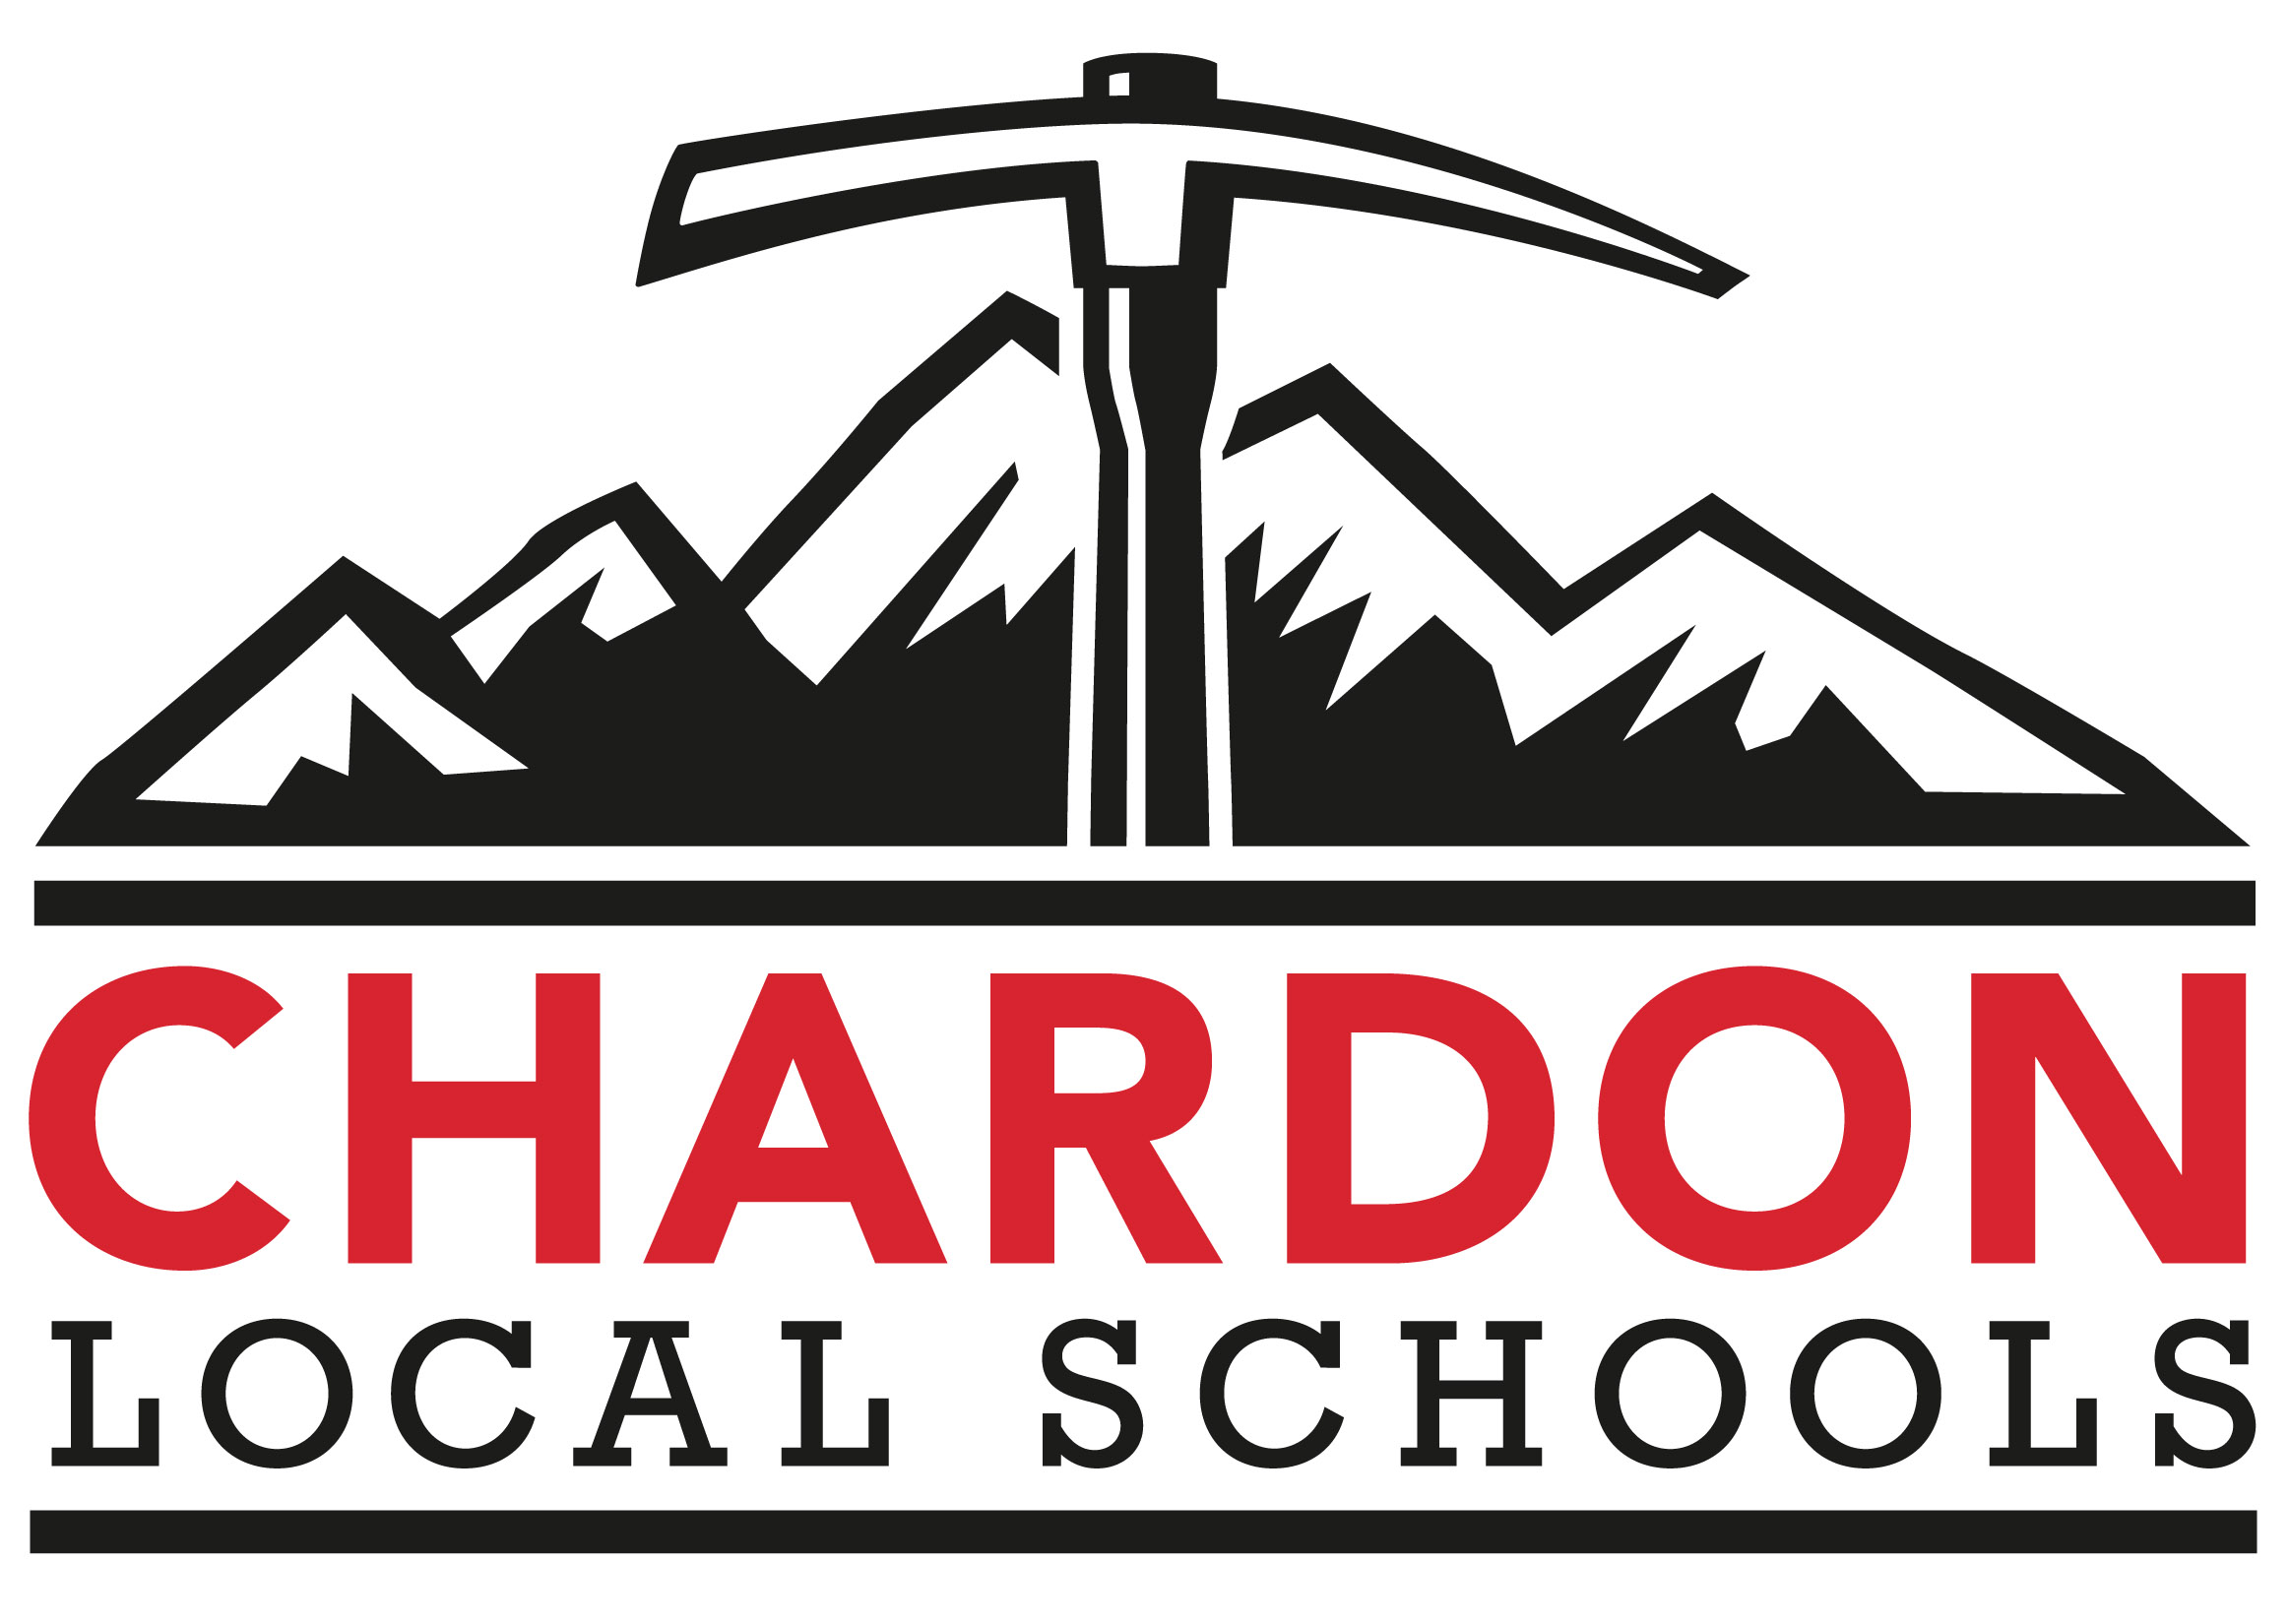 Chardon Local Schools mountain axe logo